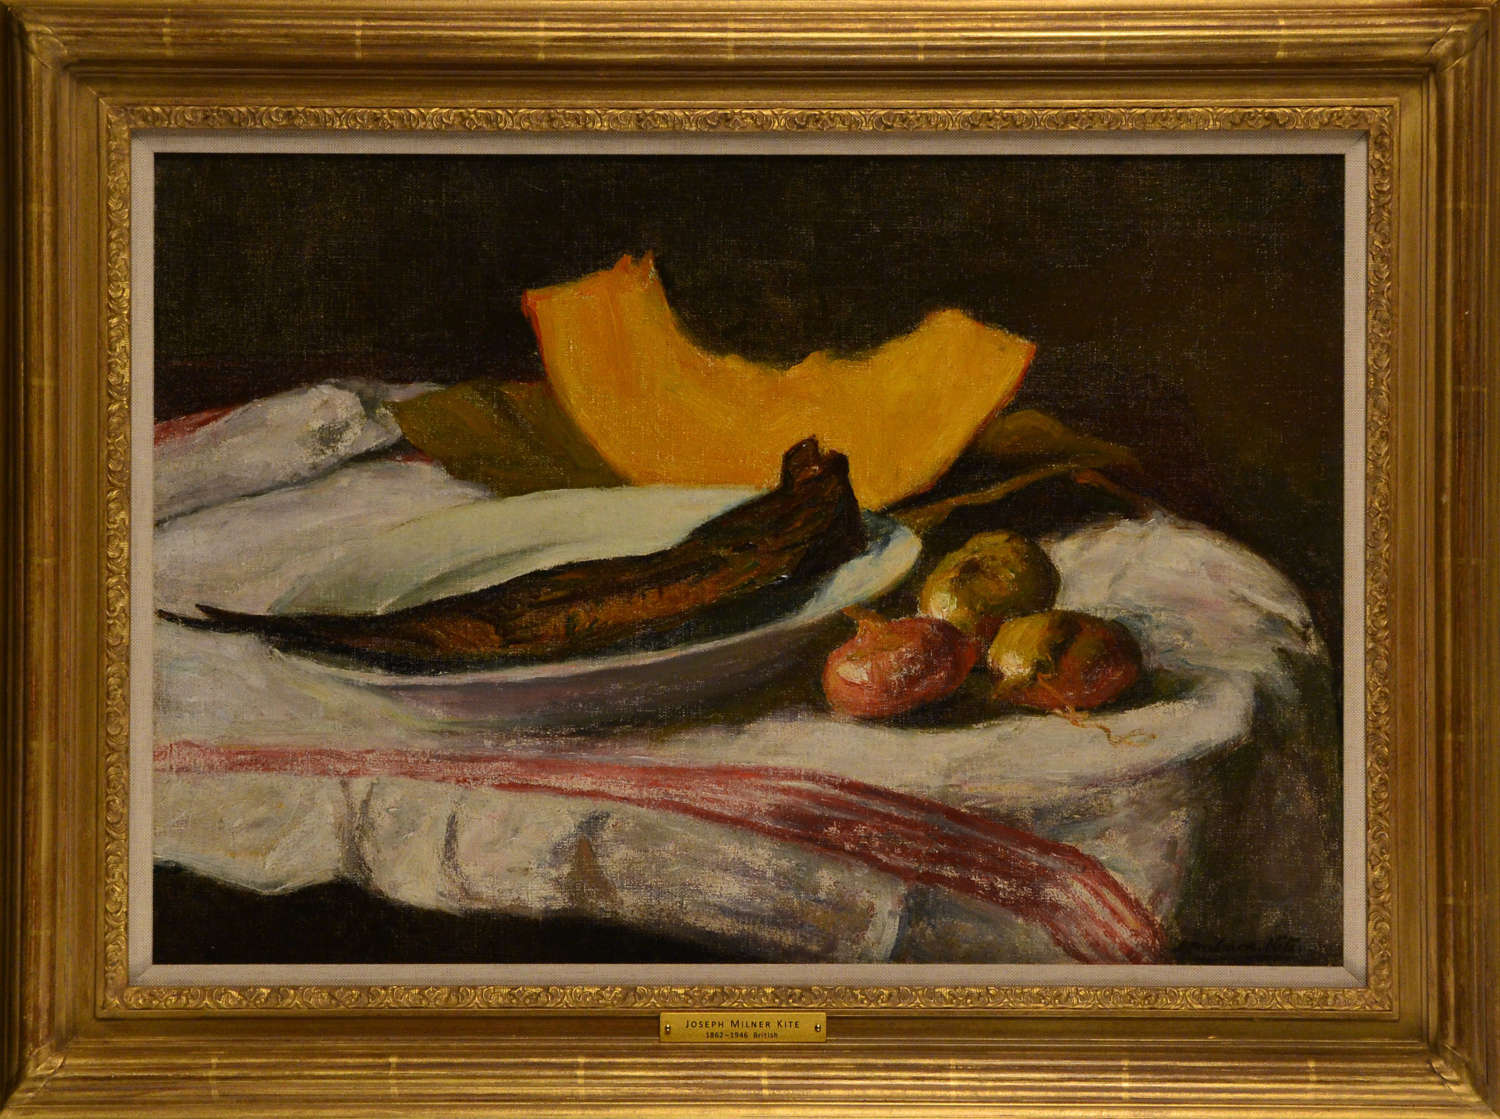 STILL LIFE OF SMOKED FISH ON A PLATE ~ JOSEPH MILNER KITE